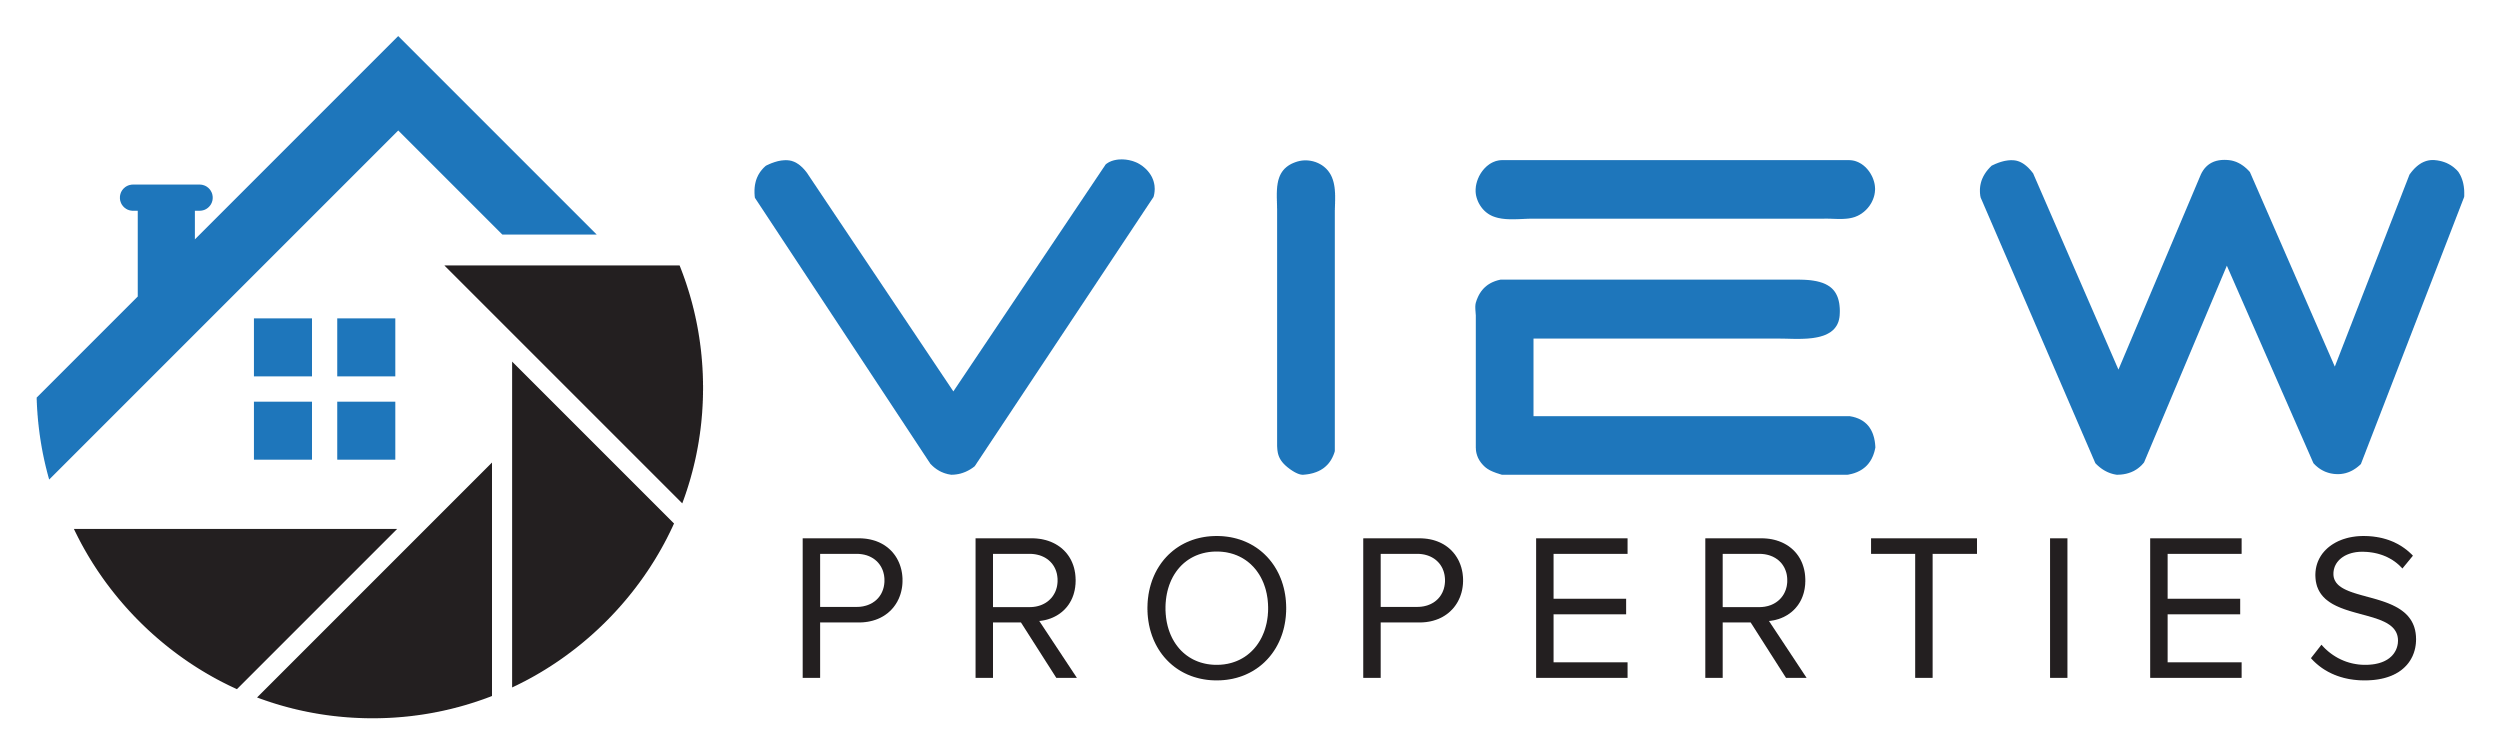 View Properties logo Charleston